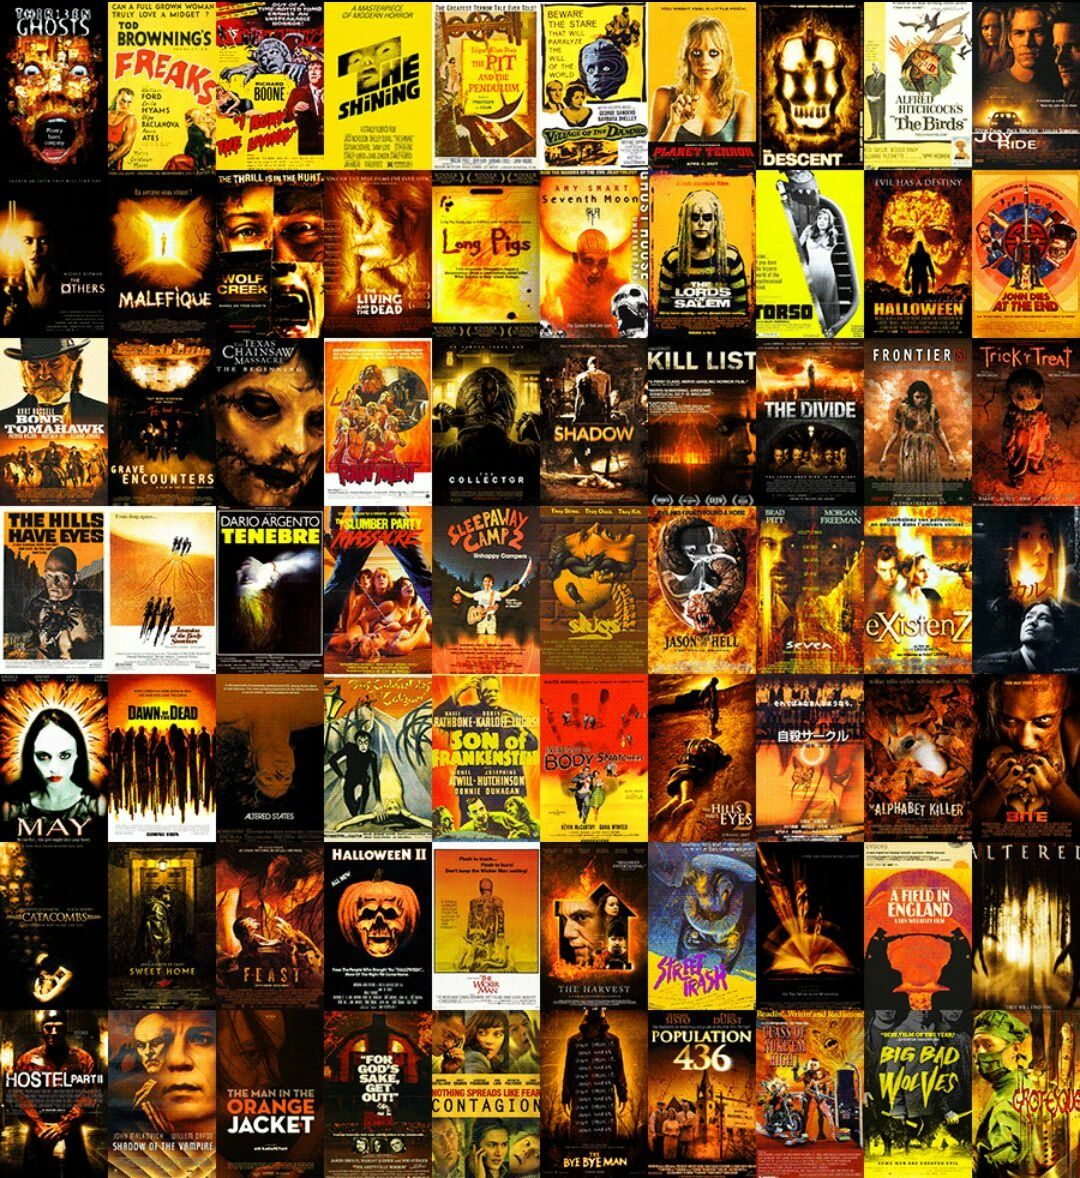 Pin by lindsey feith on Books Horror movie posters